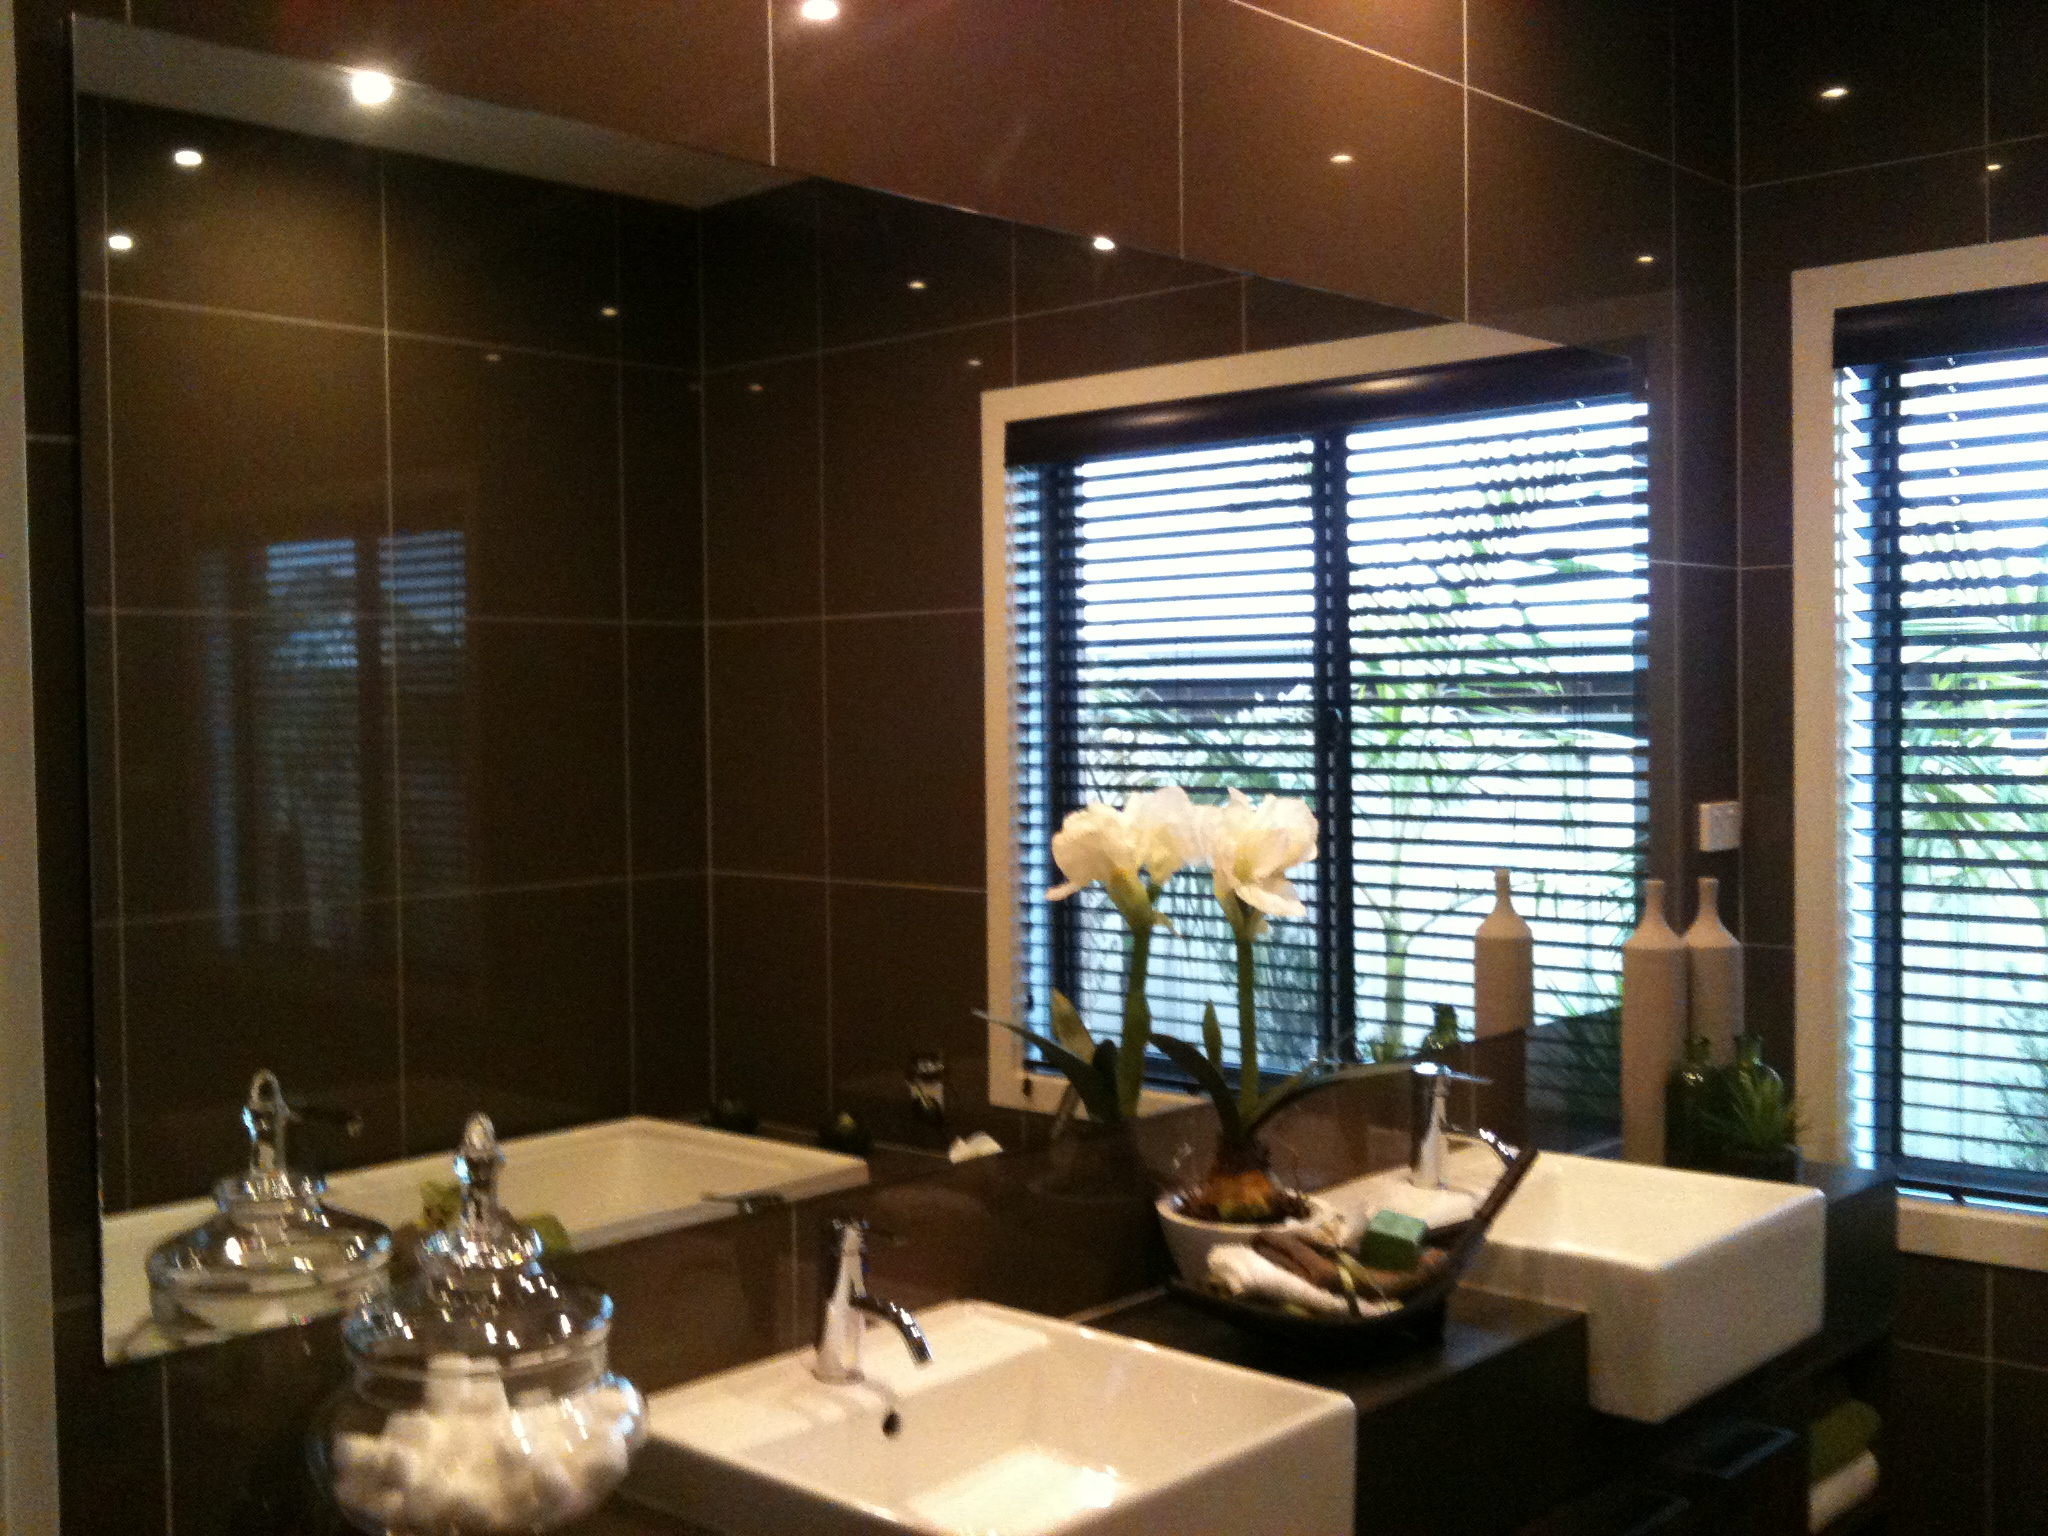 Luxurious bathroom with chocolate late tiles